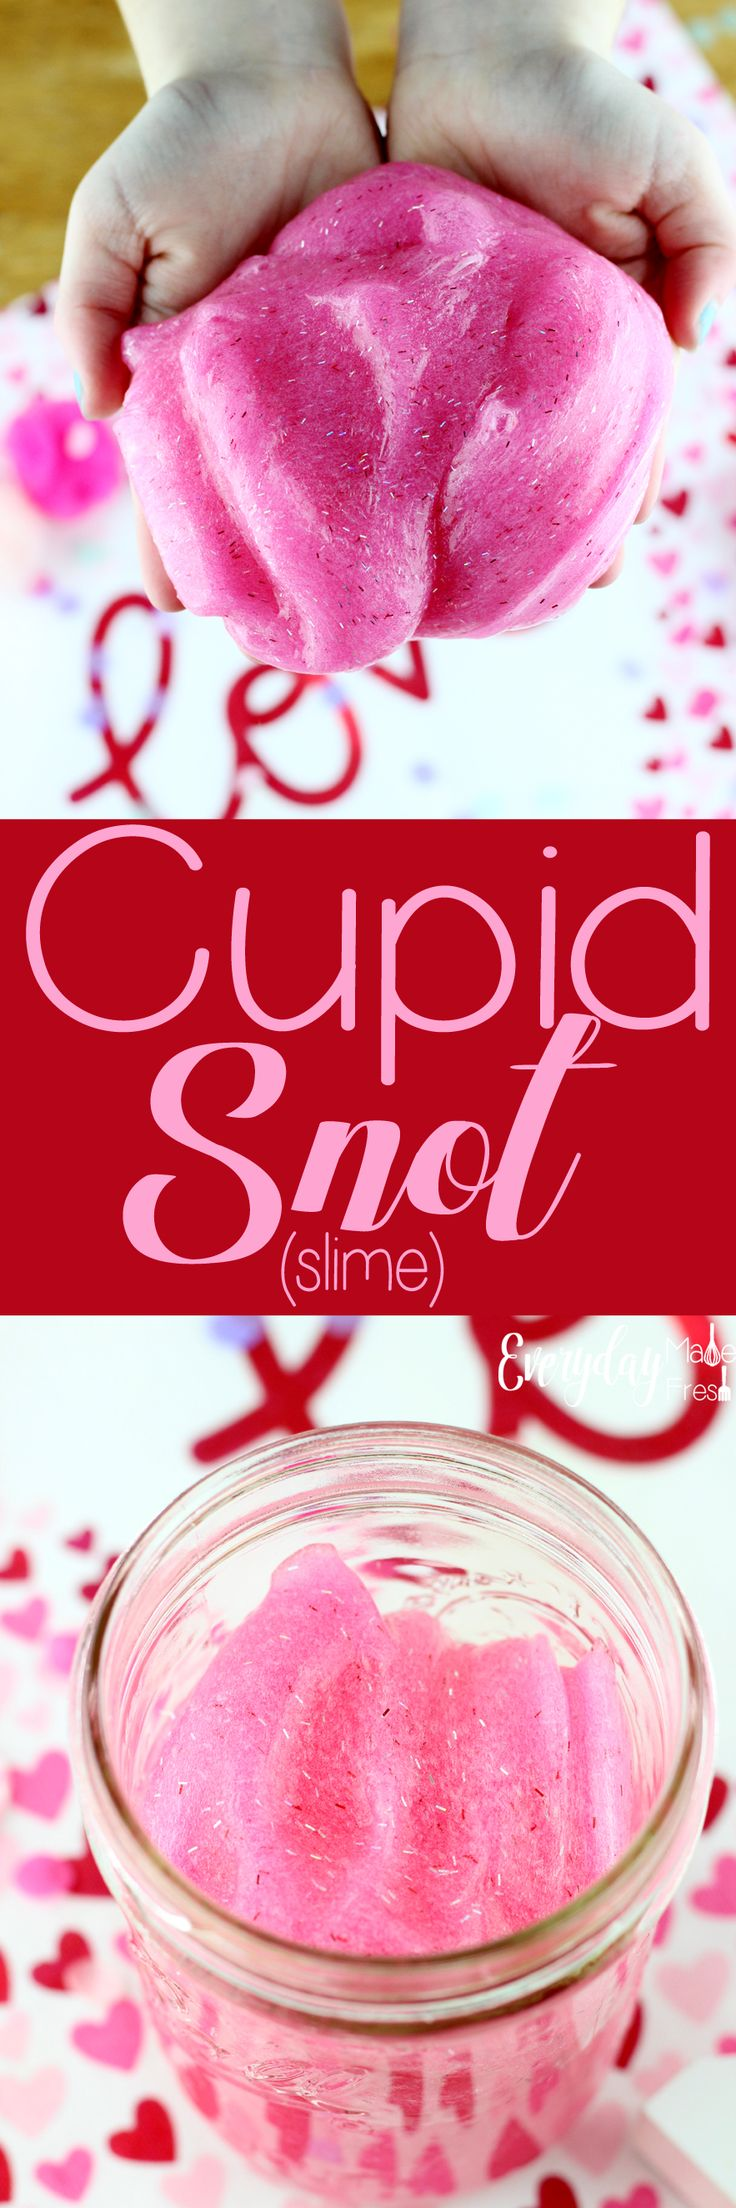 A simple 3-ingredient slime base is what is used for this Cupid Snot (Slime). It's the simplest and most fool proof way to make slime. | EverydayMadeFresh.com http://www.everydaymadefresh.com/cupid-snot-slime/